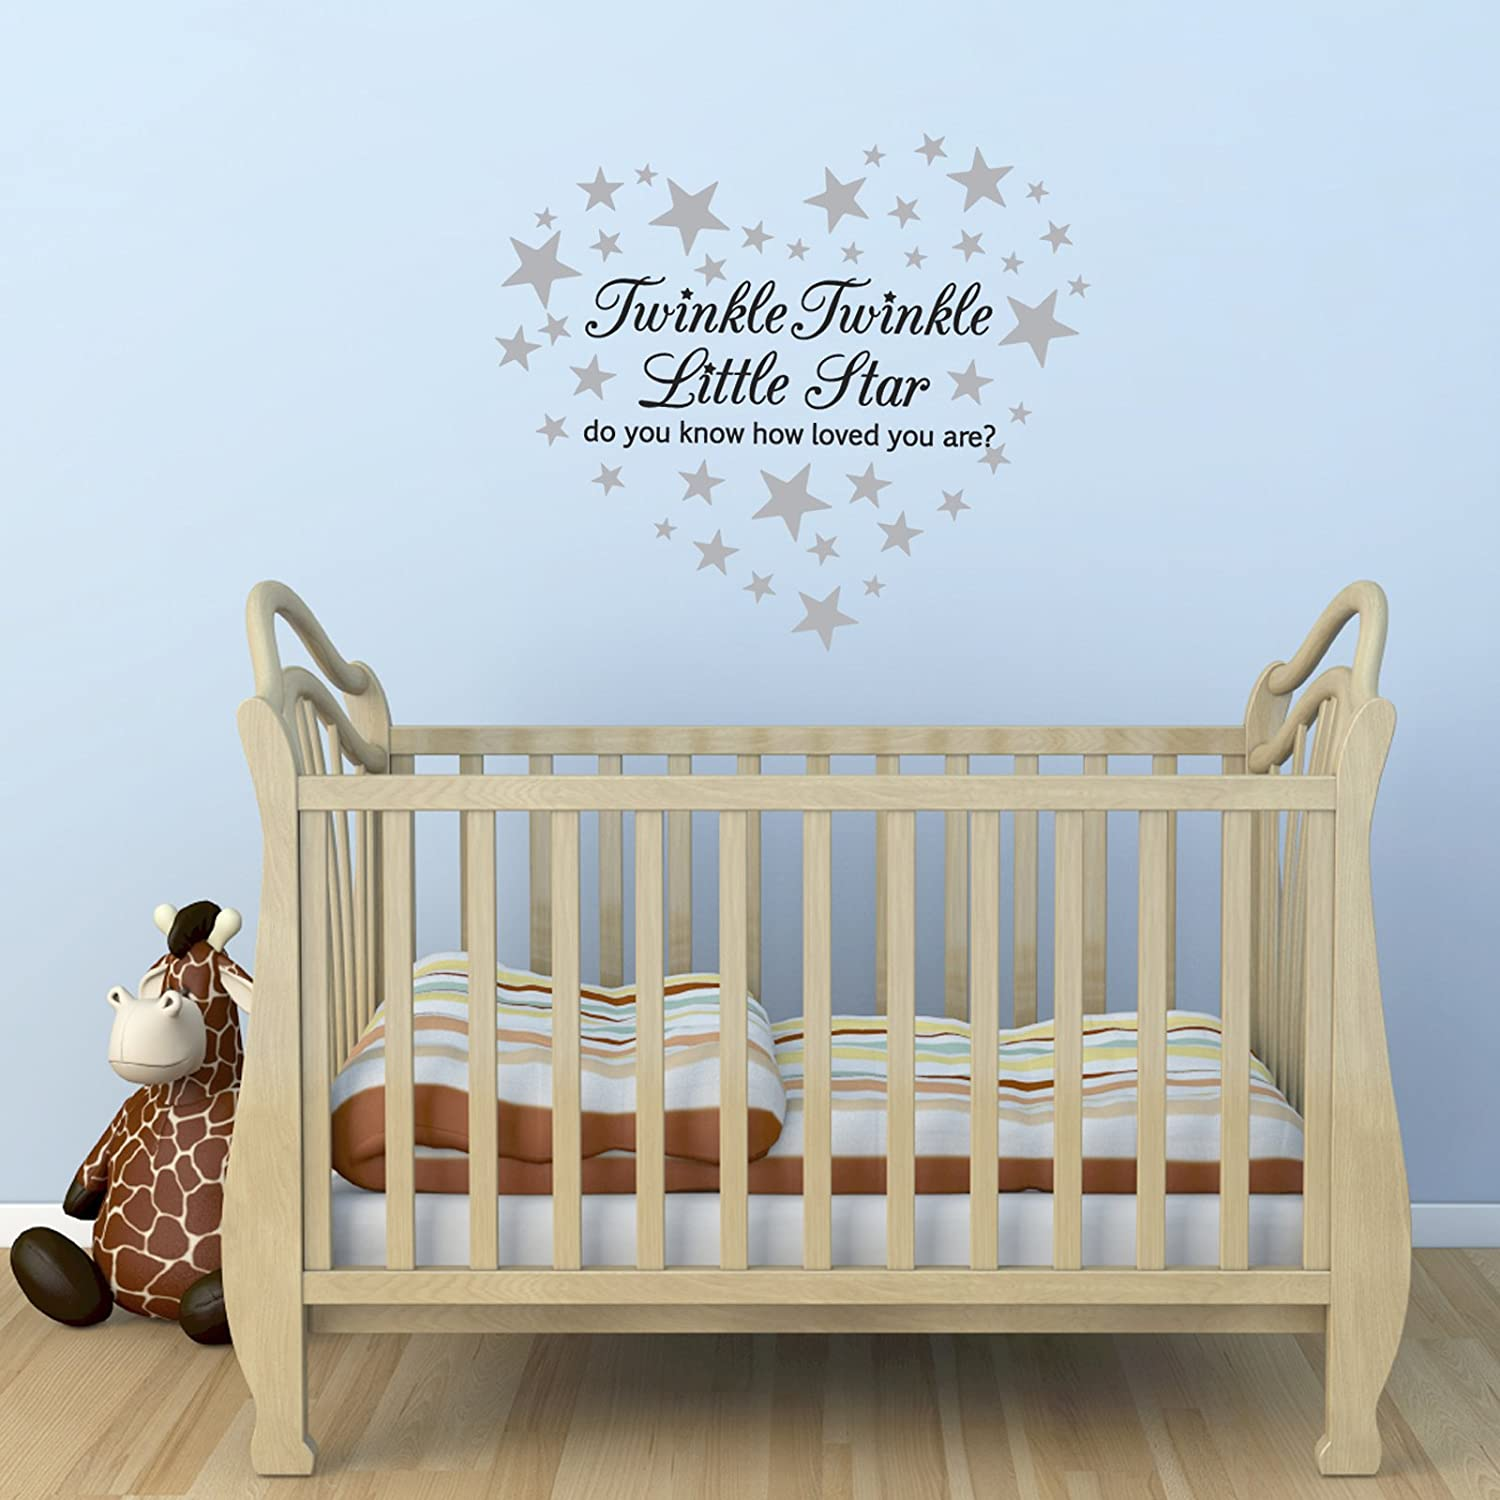 Twinkle twinkle little star wall sticker with 60 silver star twinkle twinkle little star wall sticker with 60 silver star stickers amazon kitchen home amipublicfo Choice Image